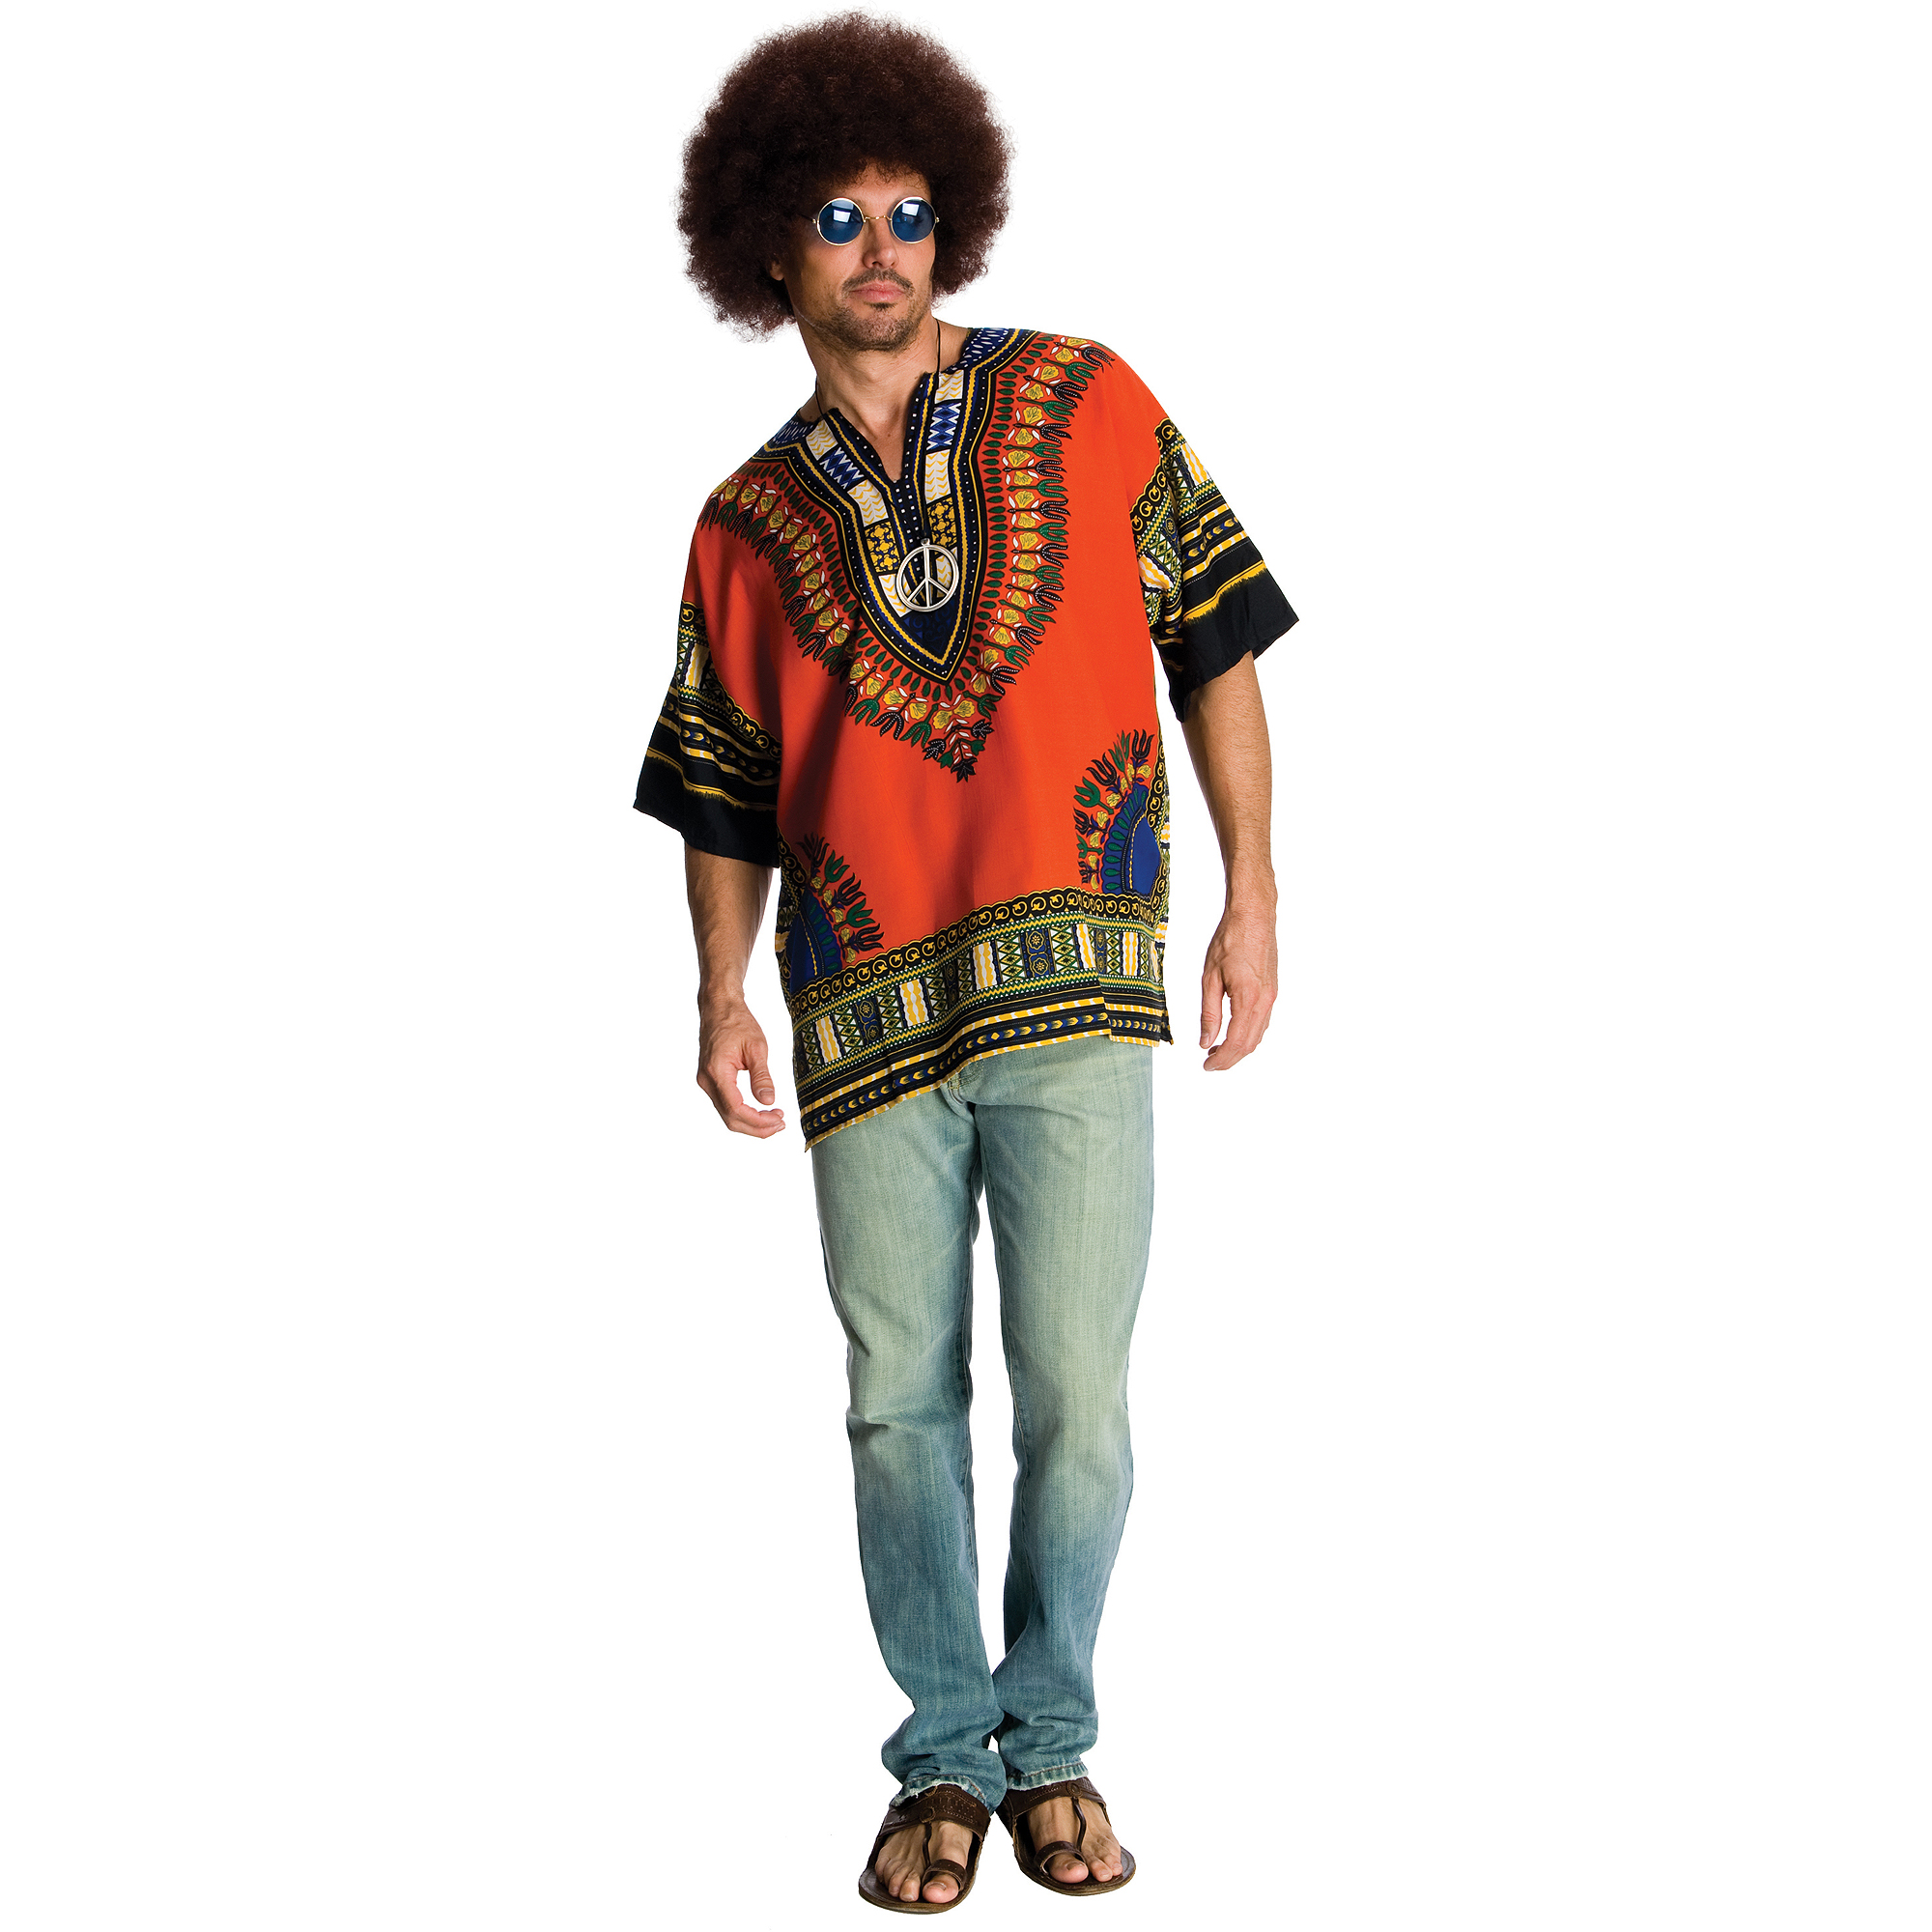 Hippie Mens Halloween Costume - Walmart.com